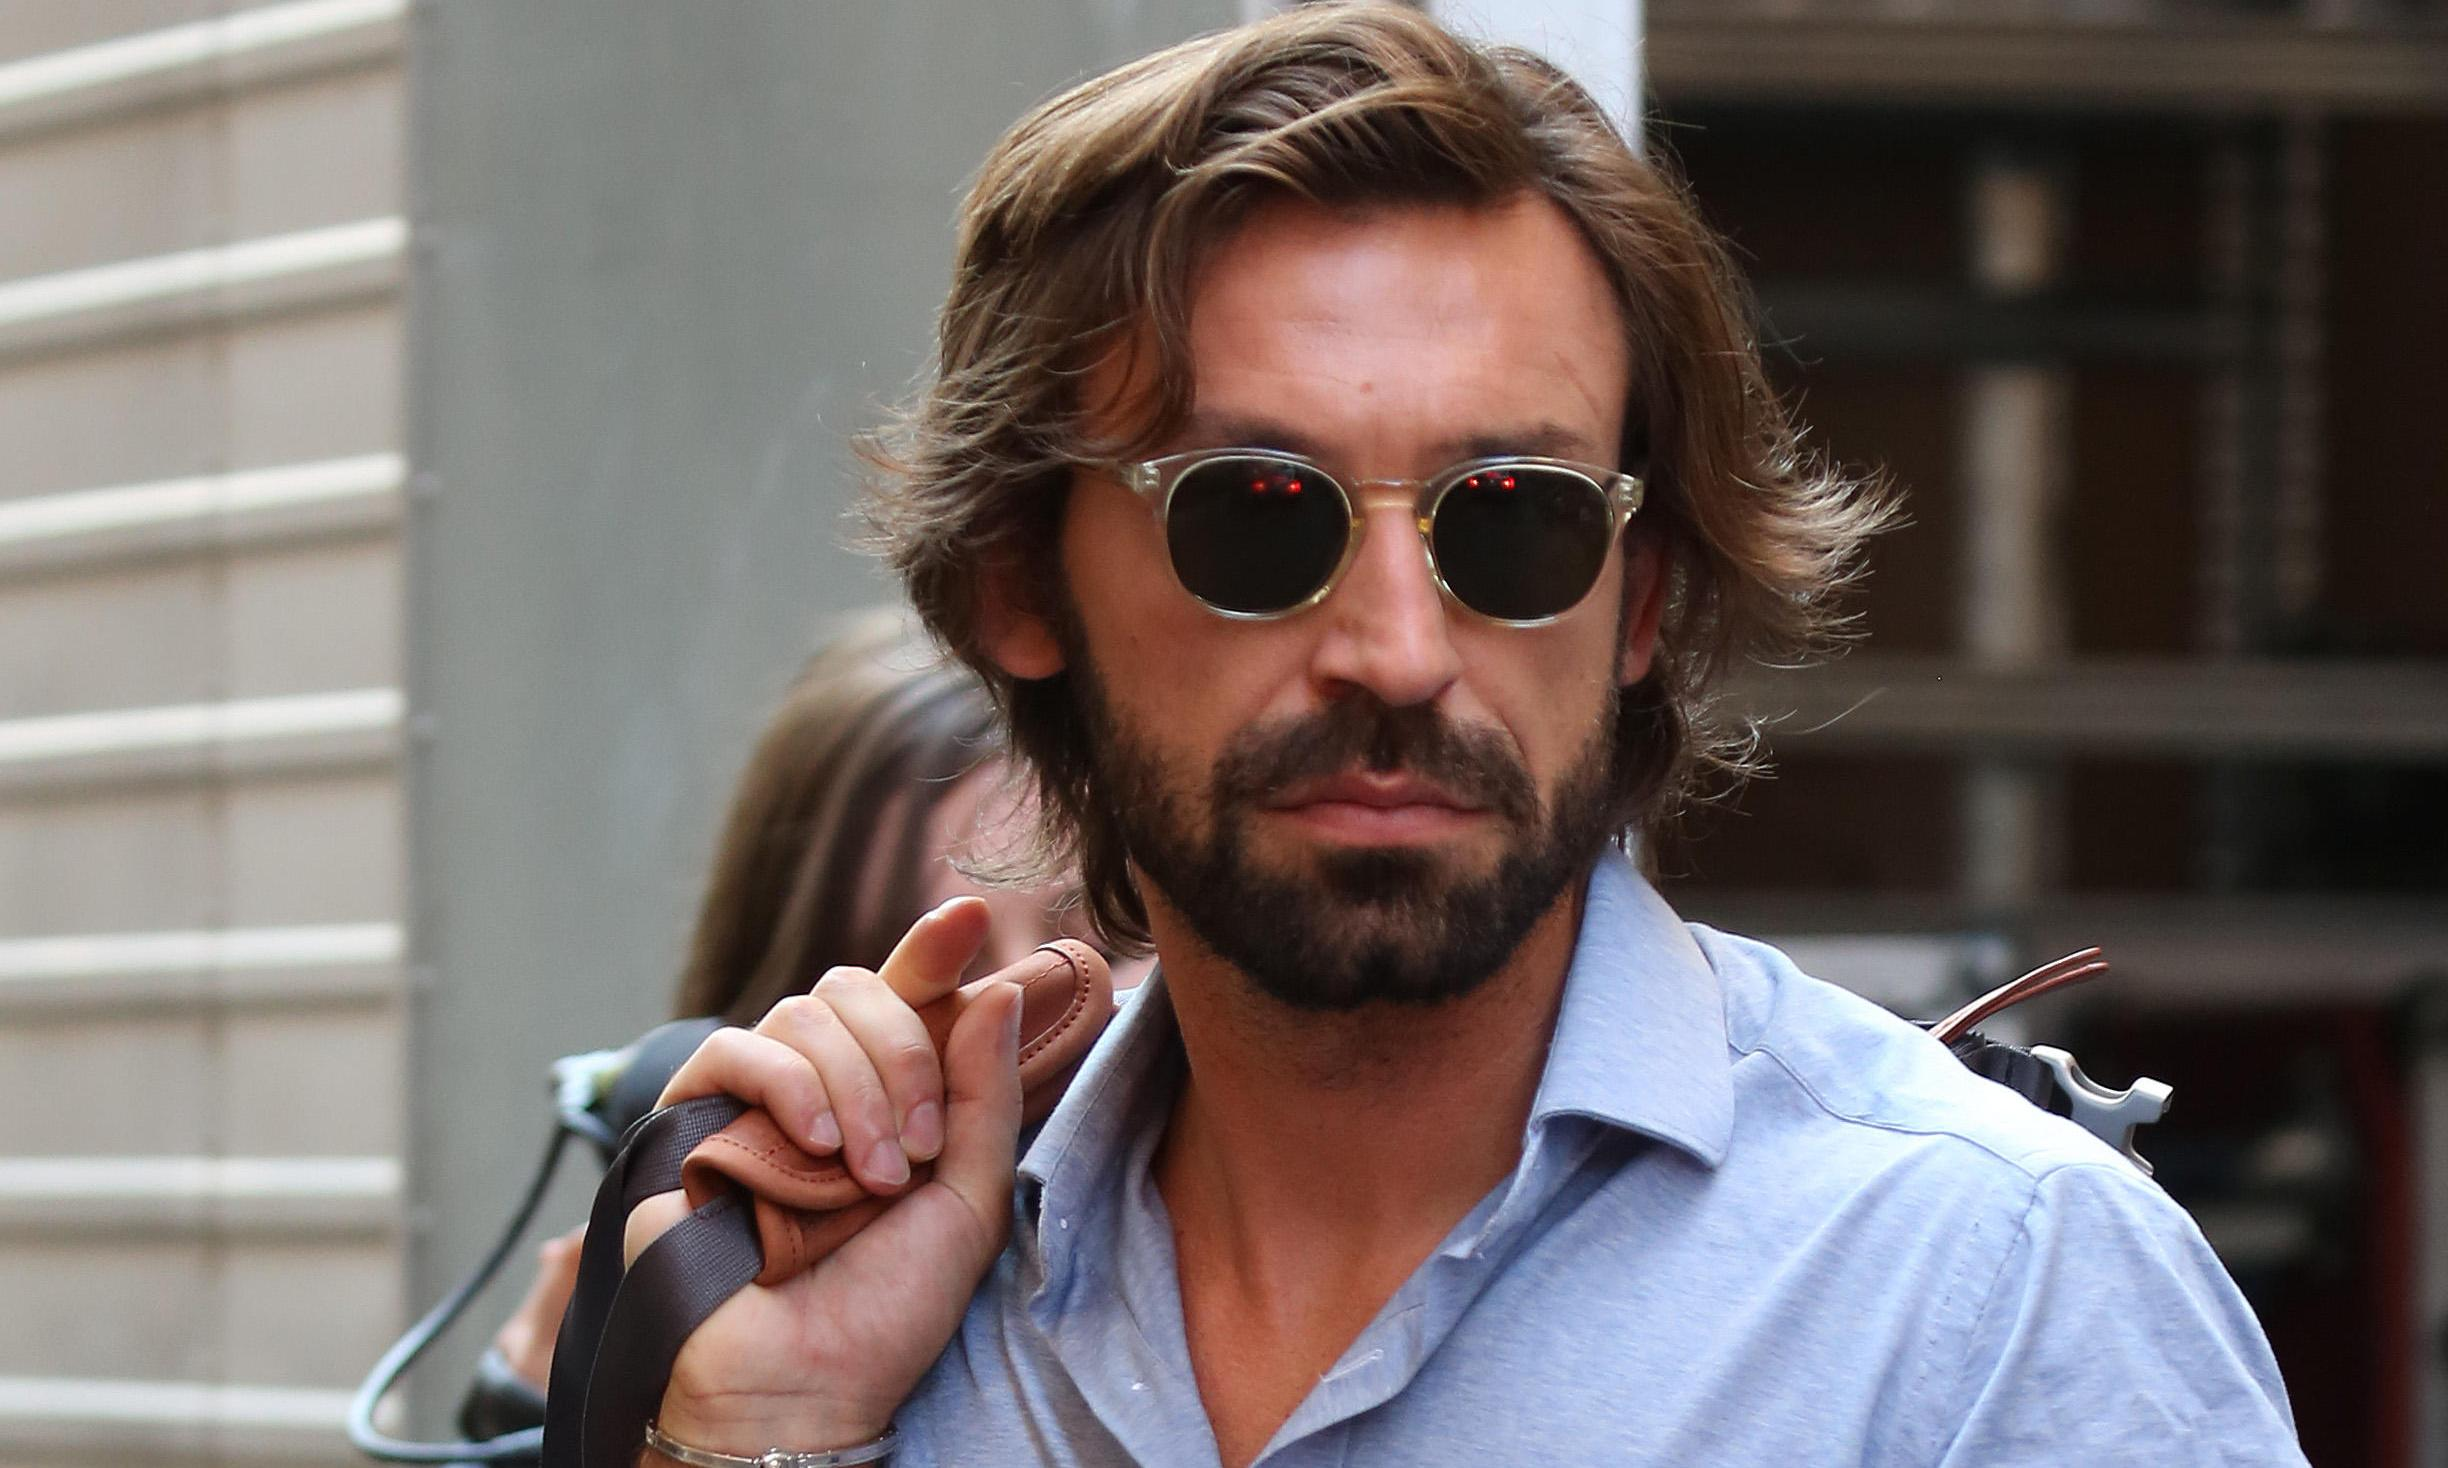 Alleged Andrea Pirlo impersonator investigated by police